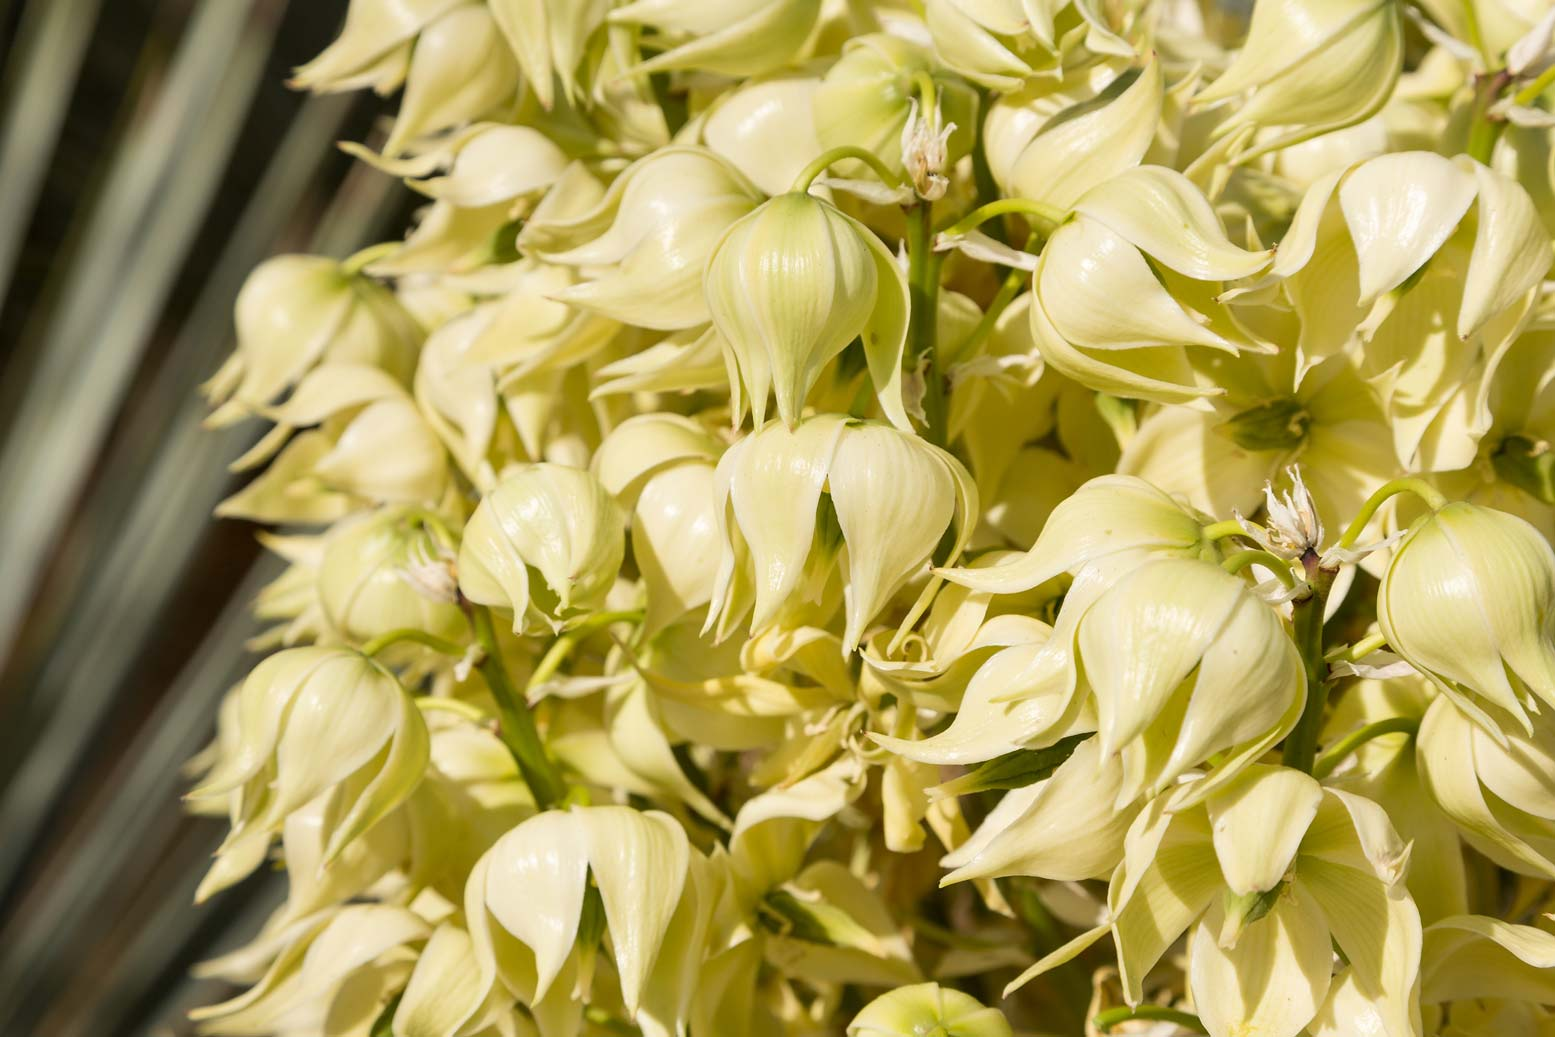 A close-up of the white blooms of the Beaked Yucca.